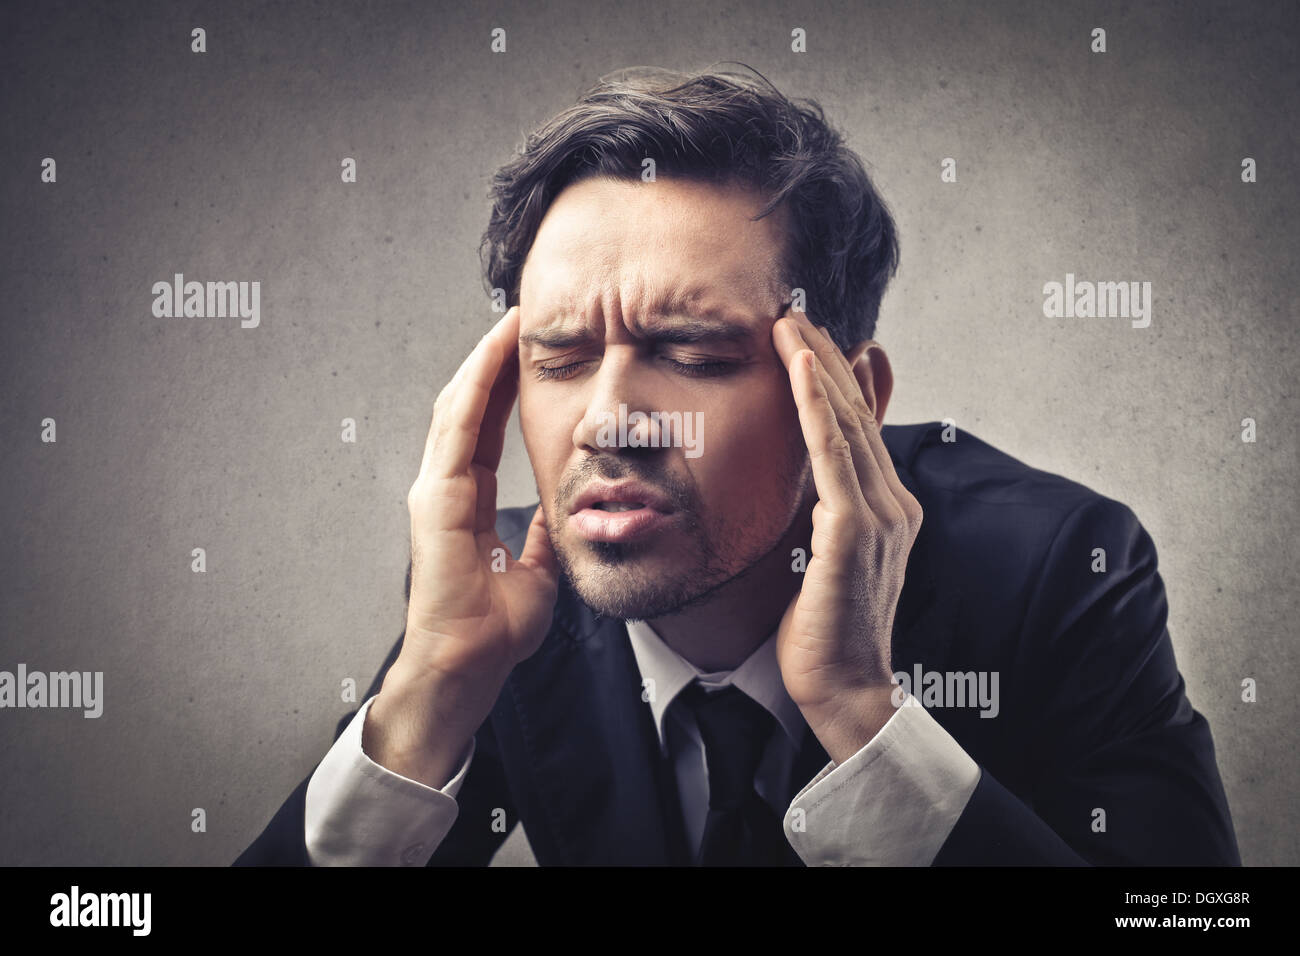 Stressed businessman avec maux de tête Photo Stock